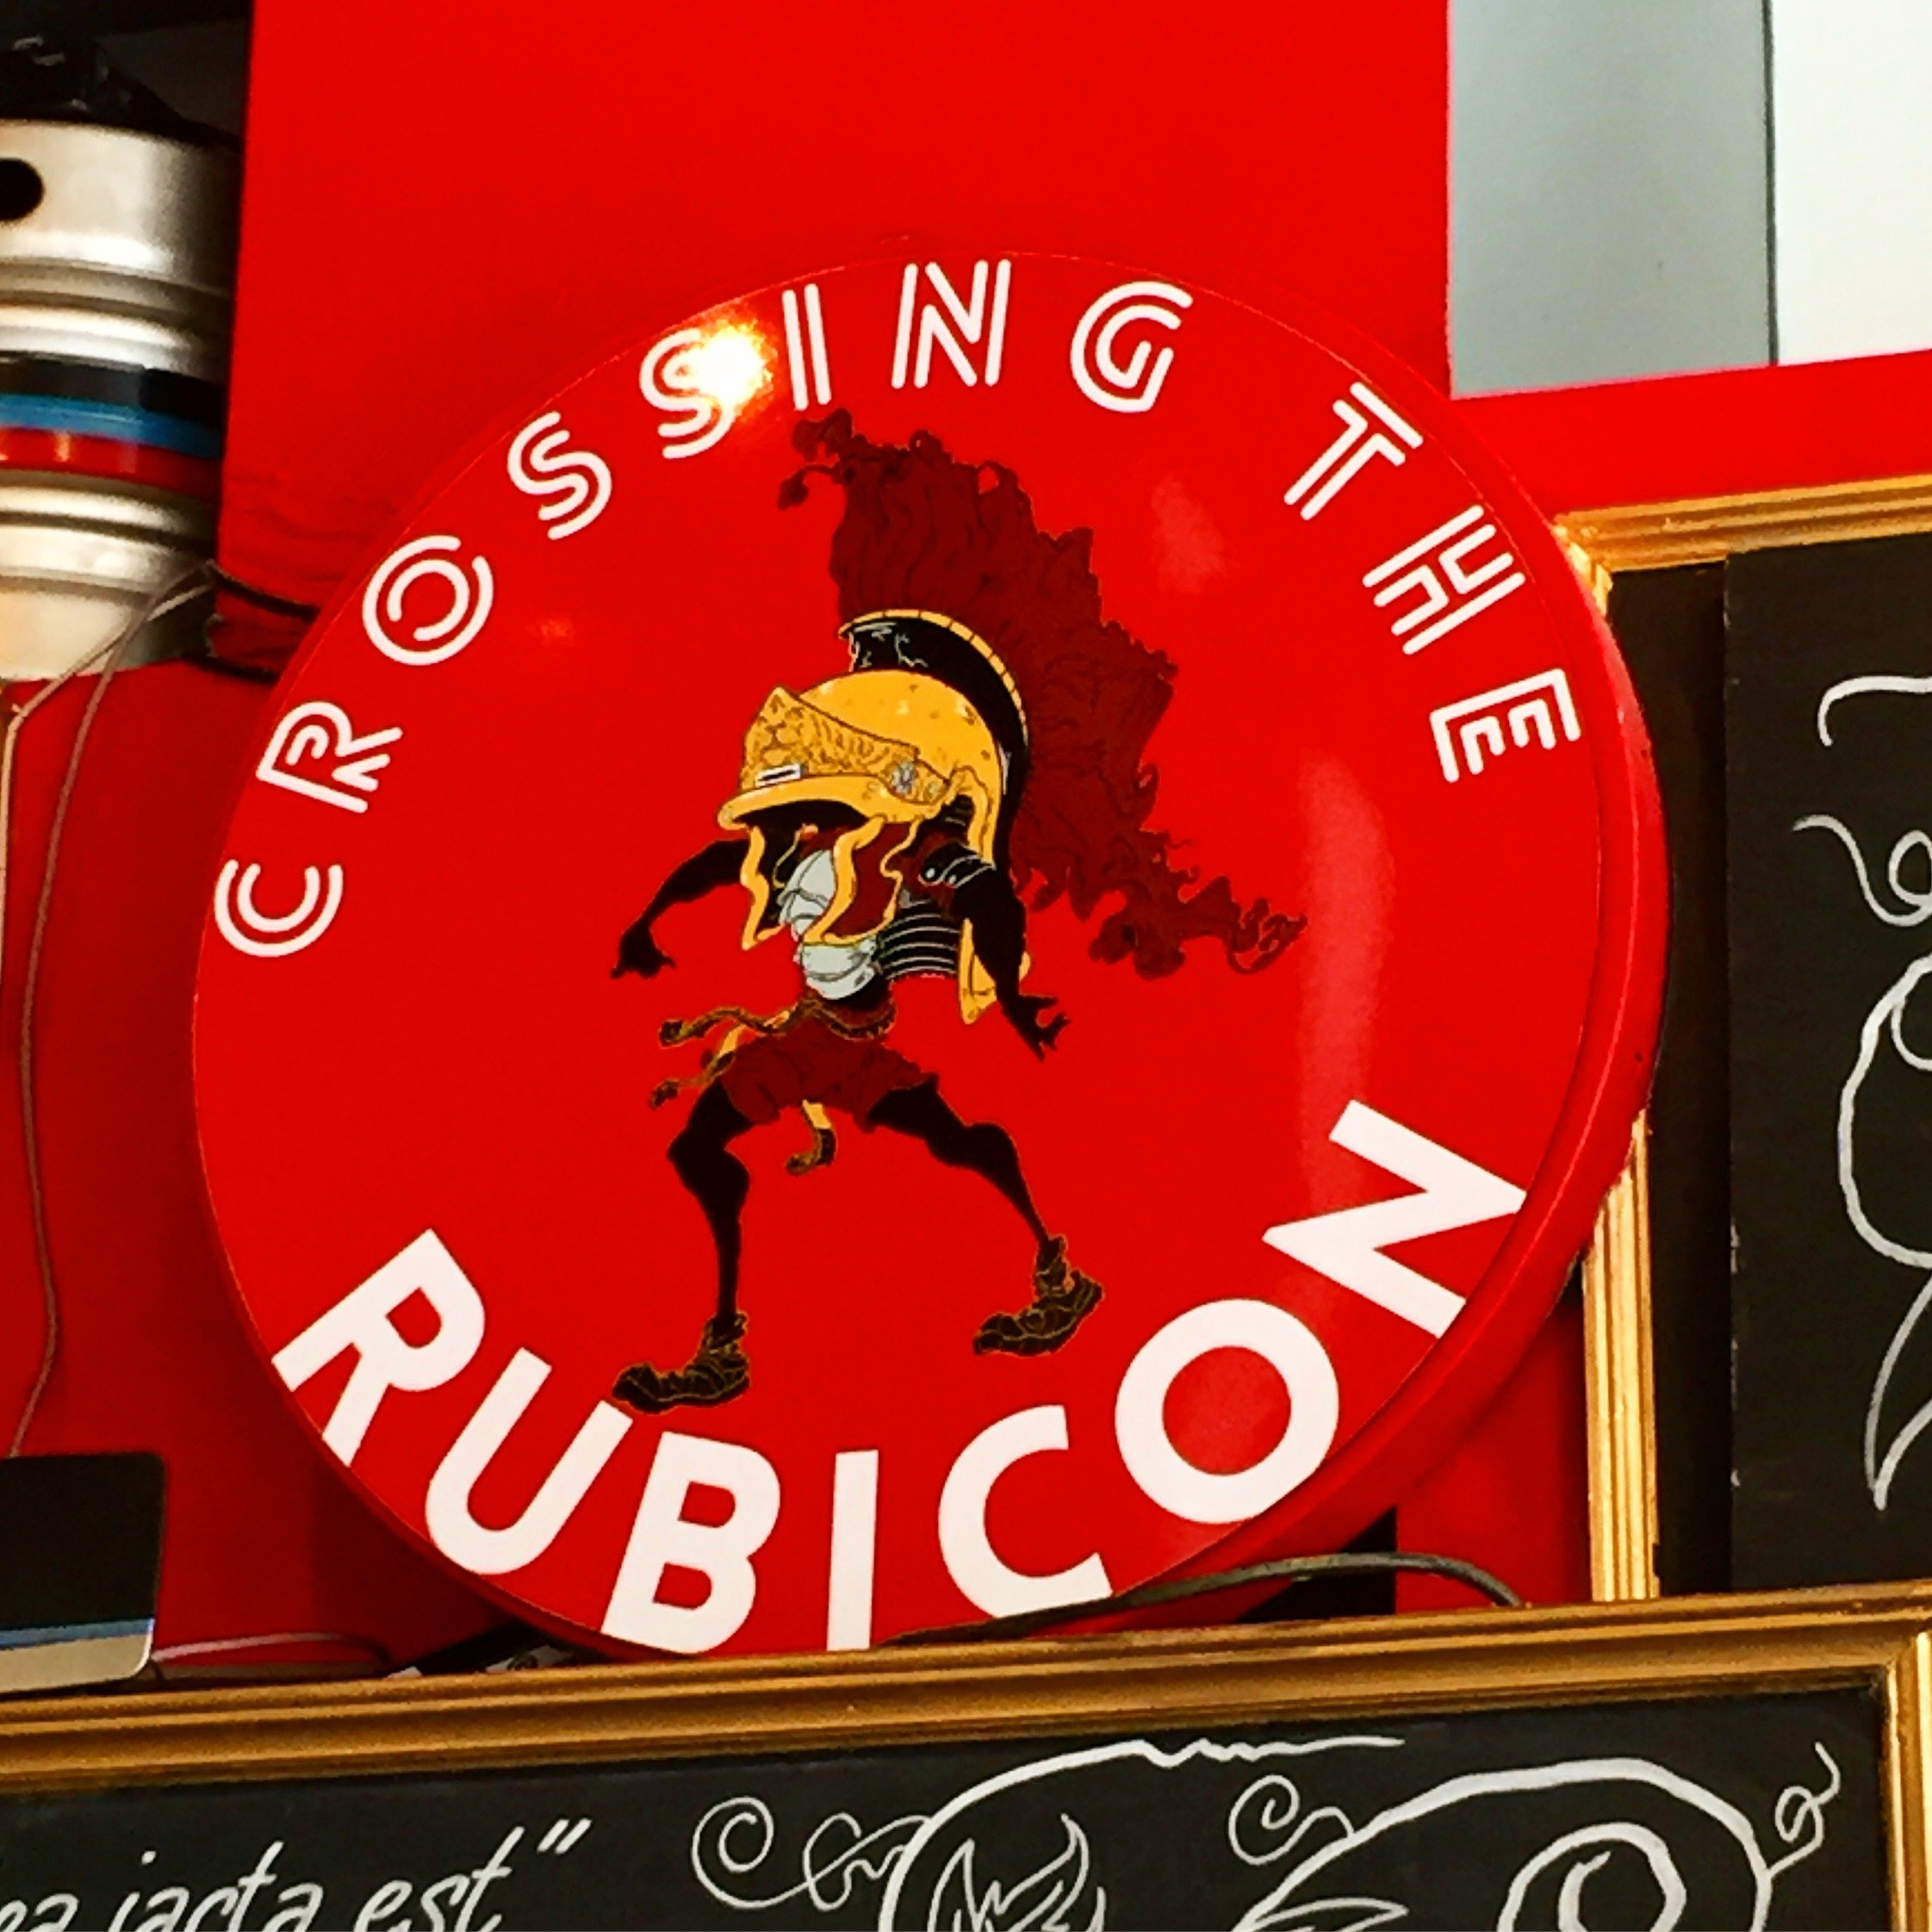 crossing the rubicon red logo alechemy event tap takeover name our beer